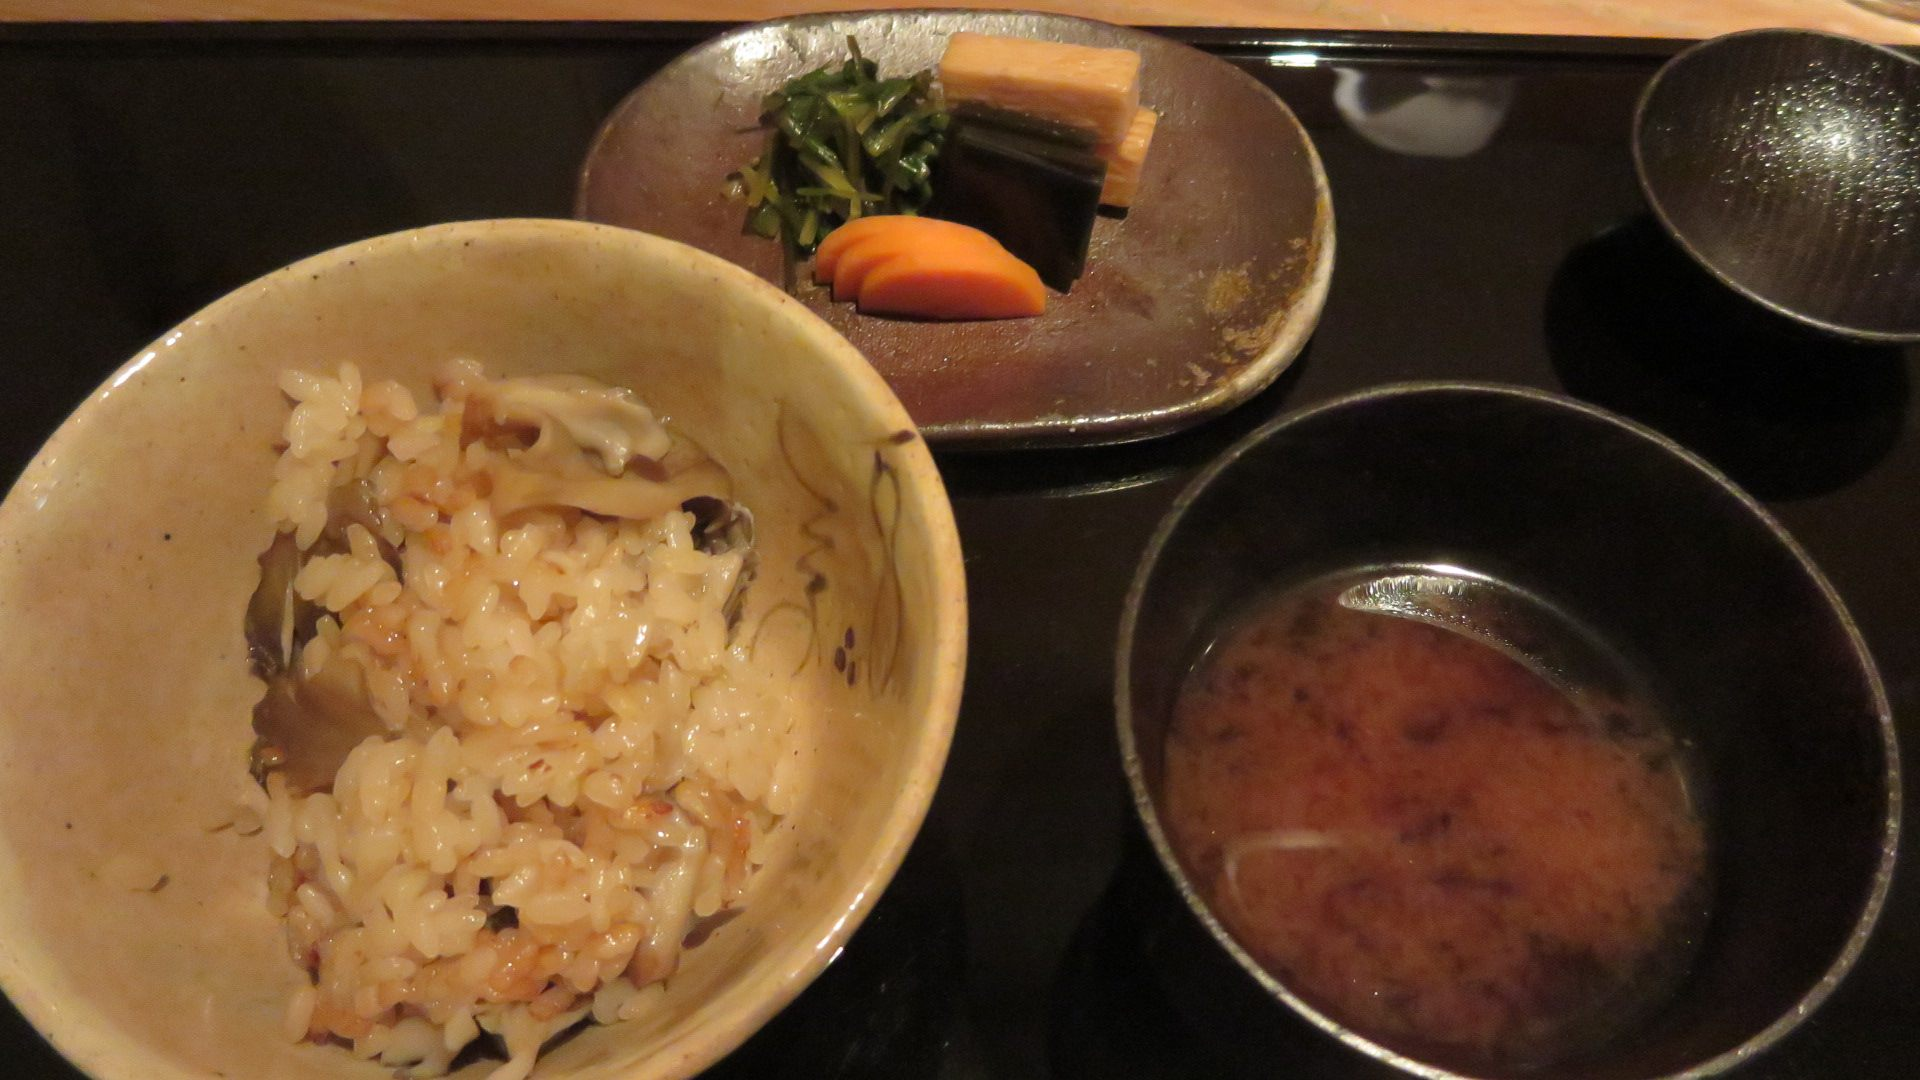 Rice cooked with maitake mushrooms